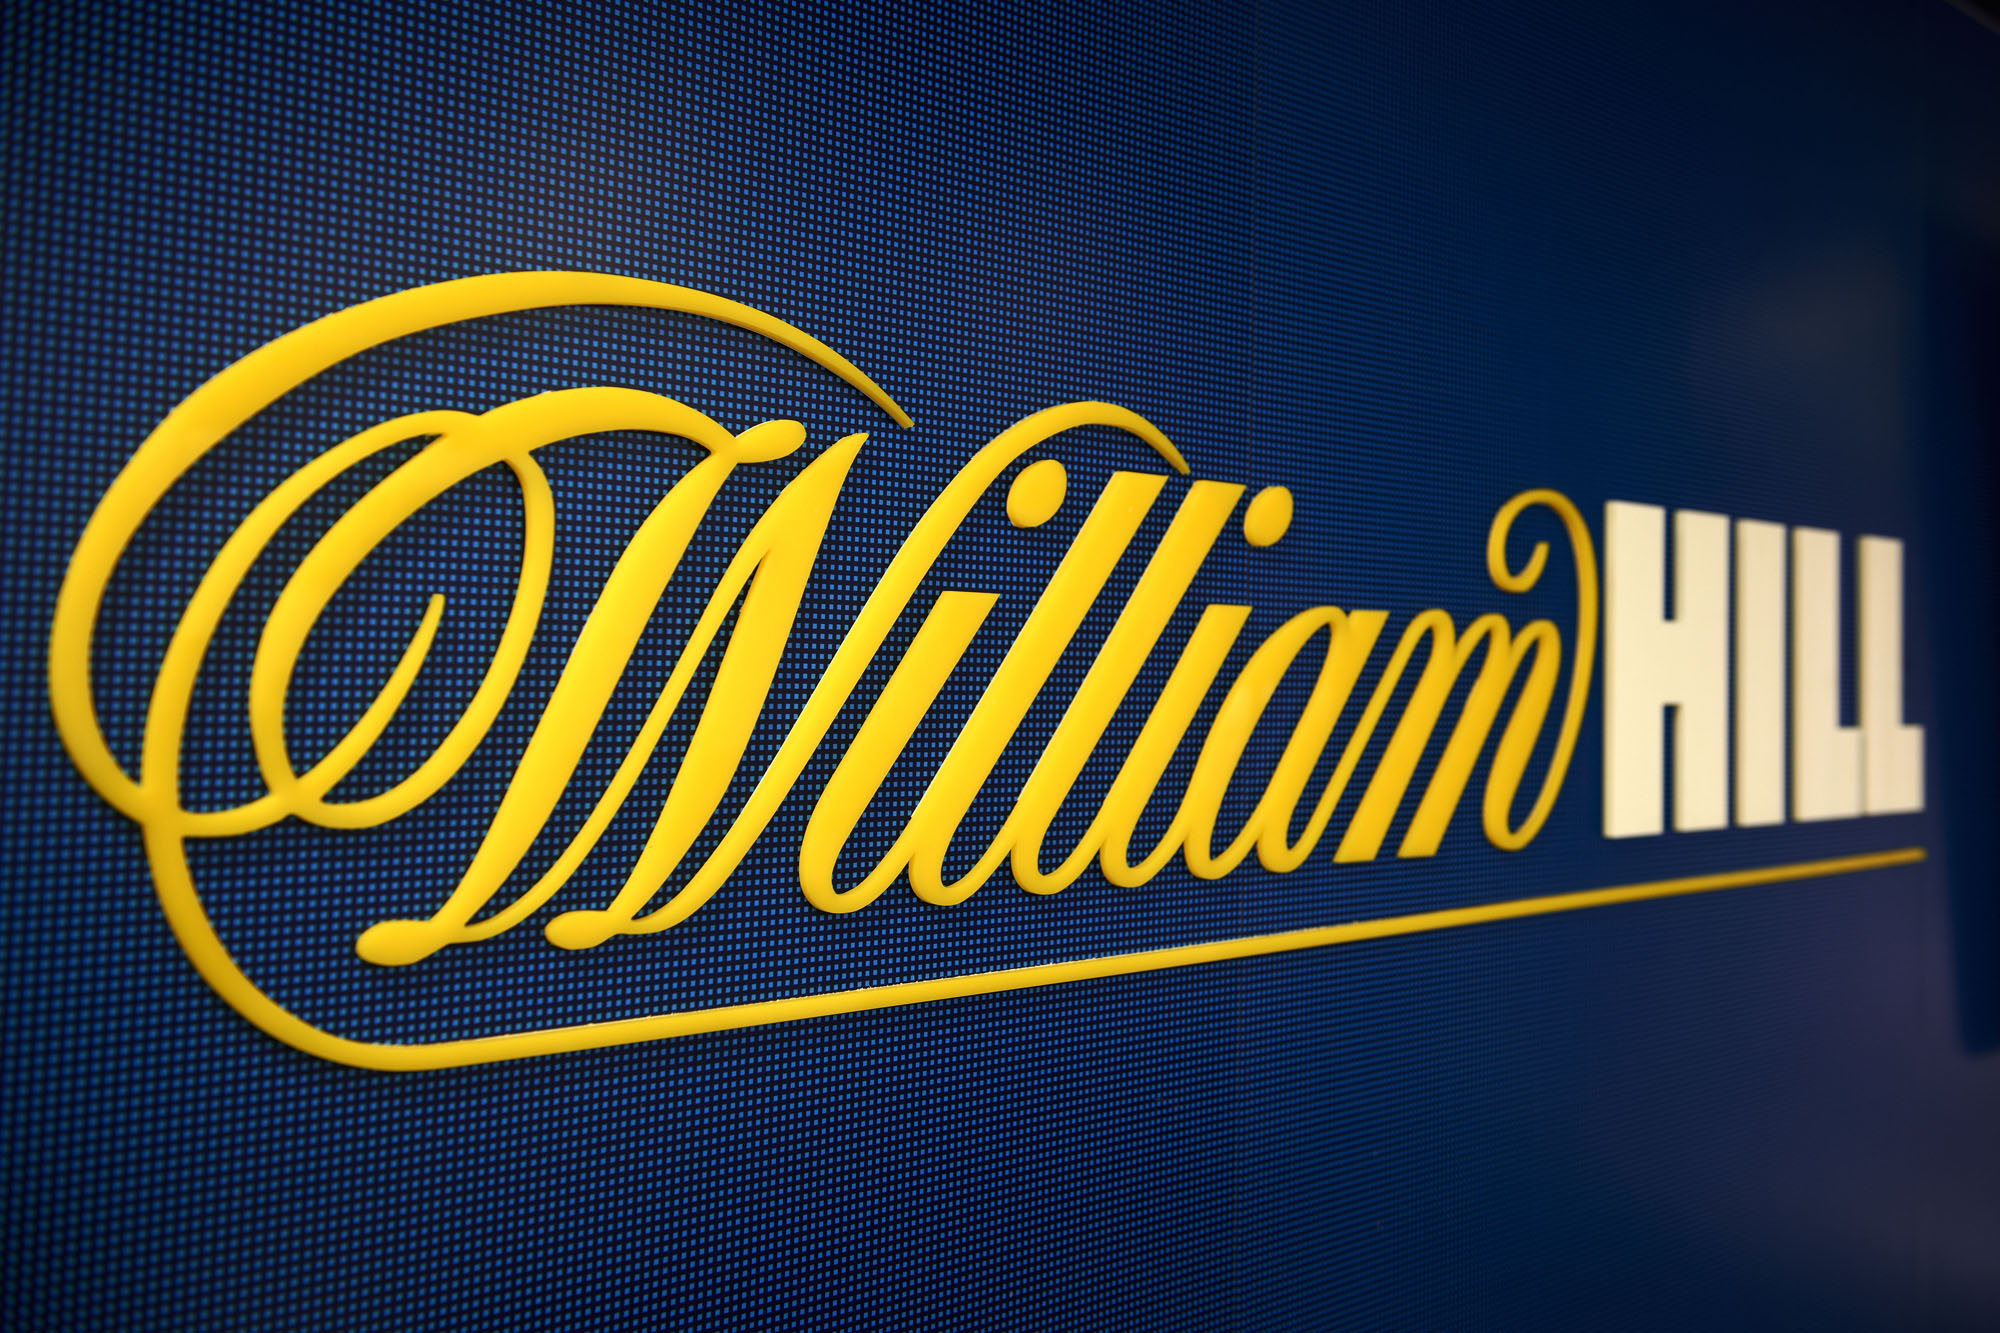 william hill news